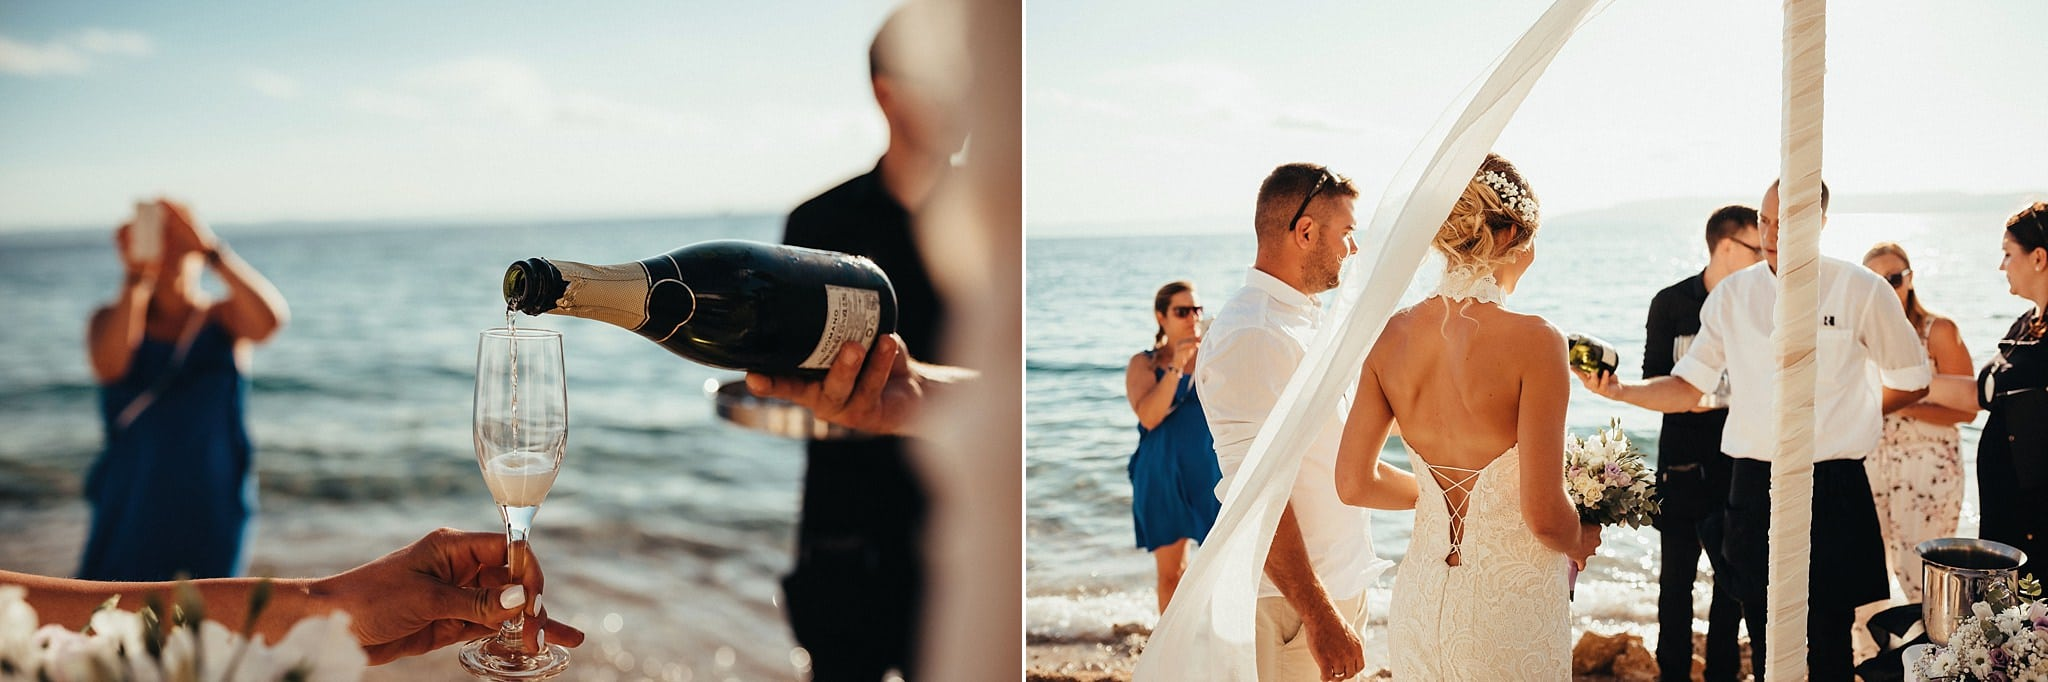 makarska wedding photographer croatia 020 - Dalmatia Wedding Photographer | Adrienn & Attila